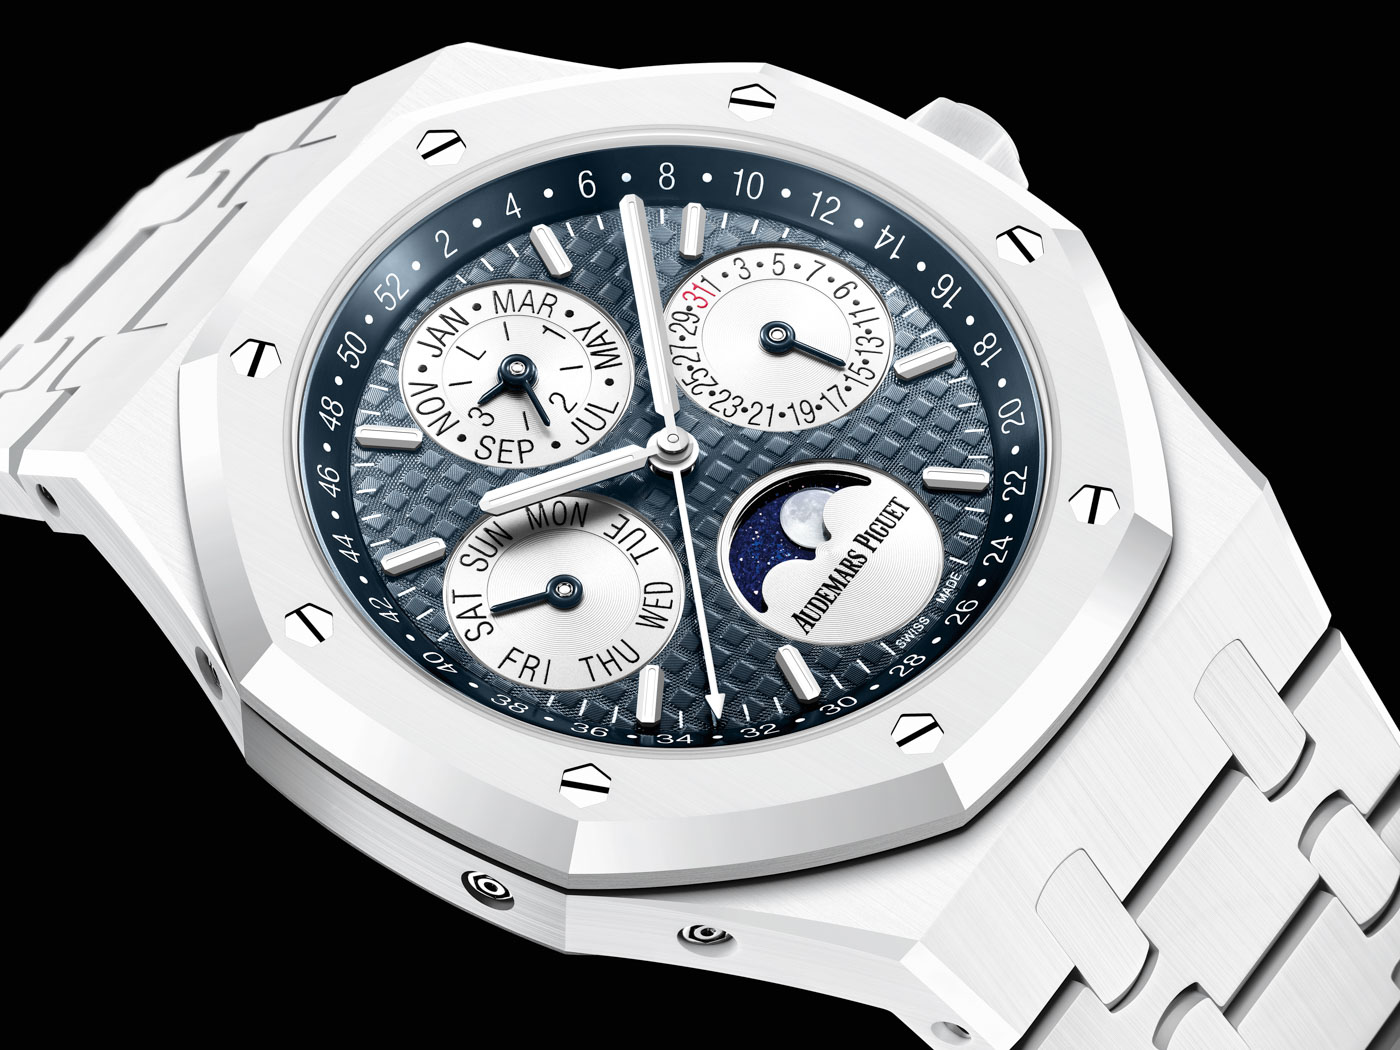 Royal Oak Perpetual Calendar White Ceramic